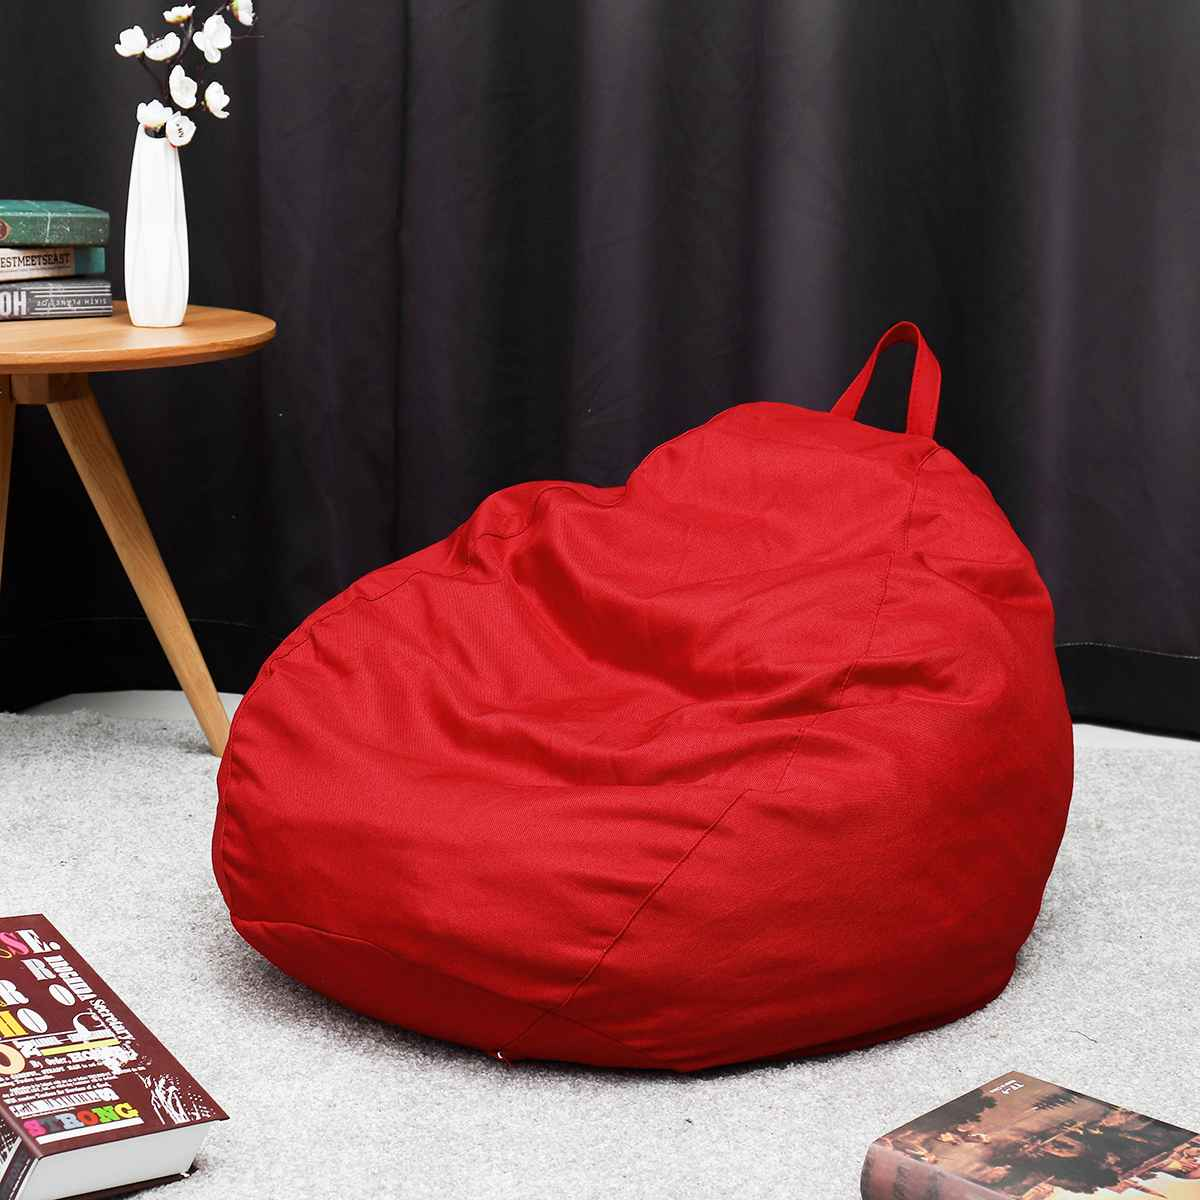 13 colors Lazy BeanBag Sofas Cover Chairs without Filler Linen Cloth Lounger Seat Bean Bag Pouf Puff Couch Tatami Living Room13 colors Lazy BeanBag Sofas Cover Chairs without Filler Linen Cloth Lounger Seat Bean Bag Pouf Puff Couch Tatami Living Room